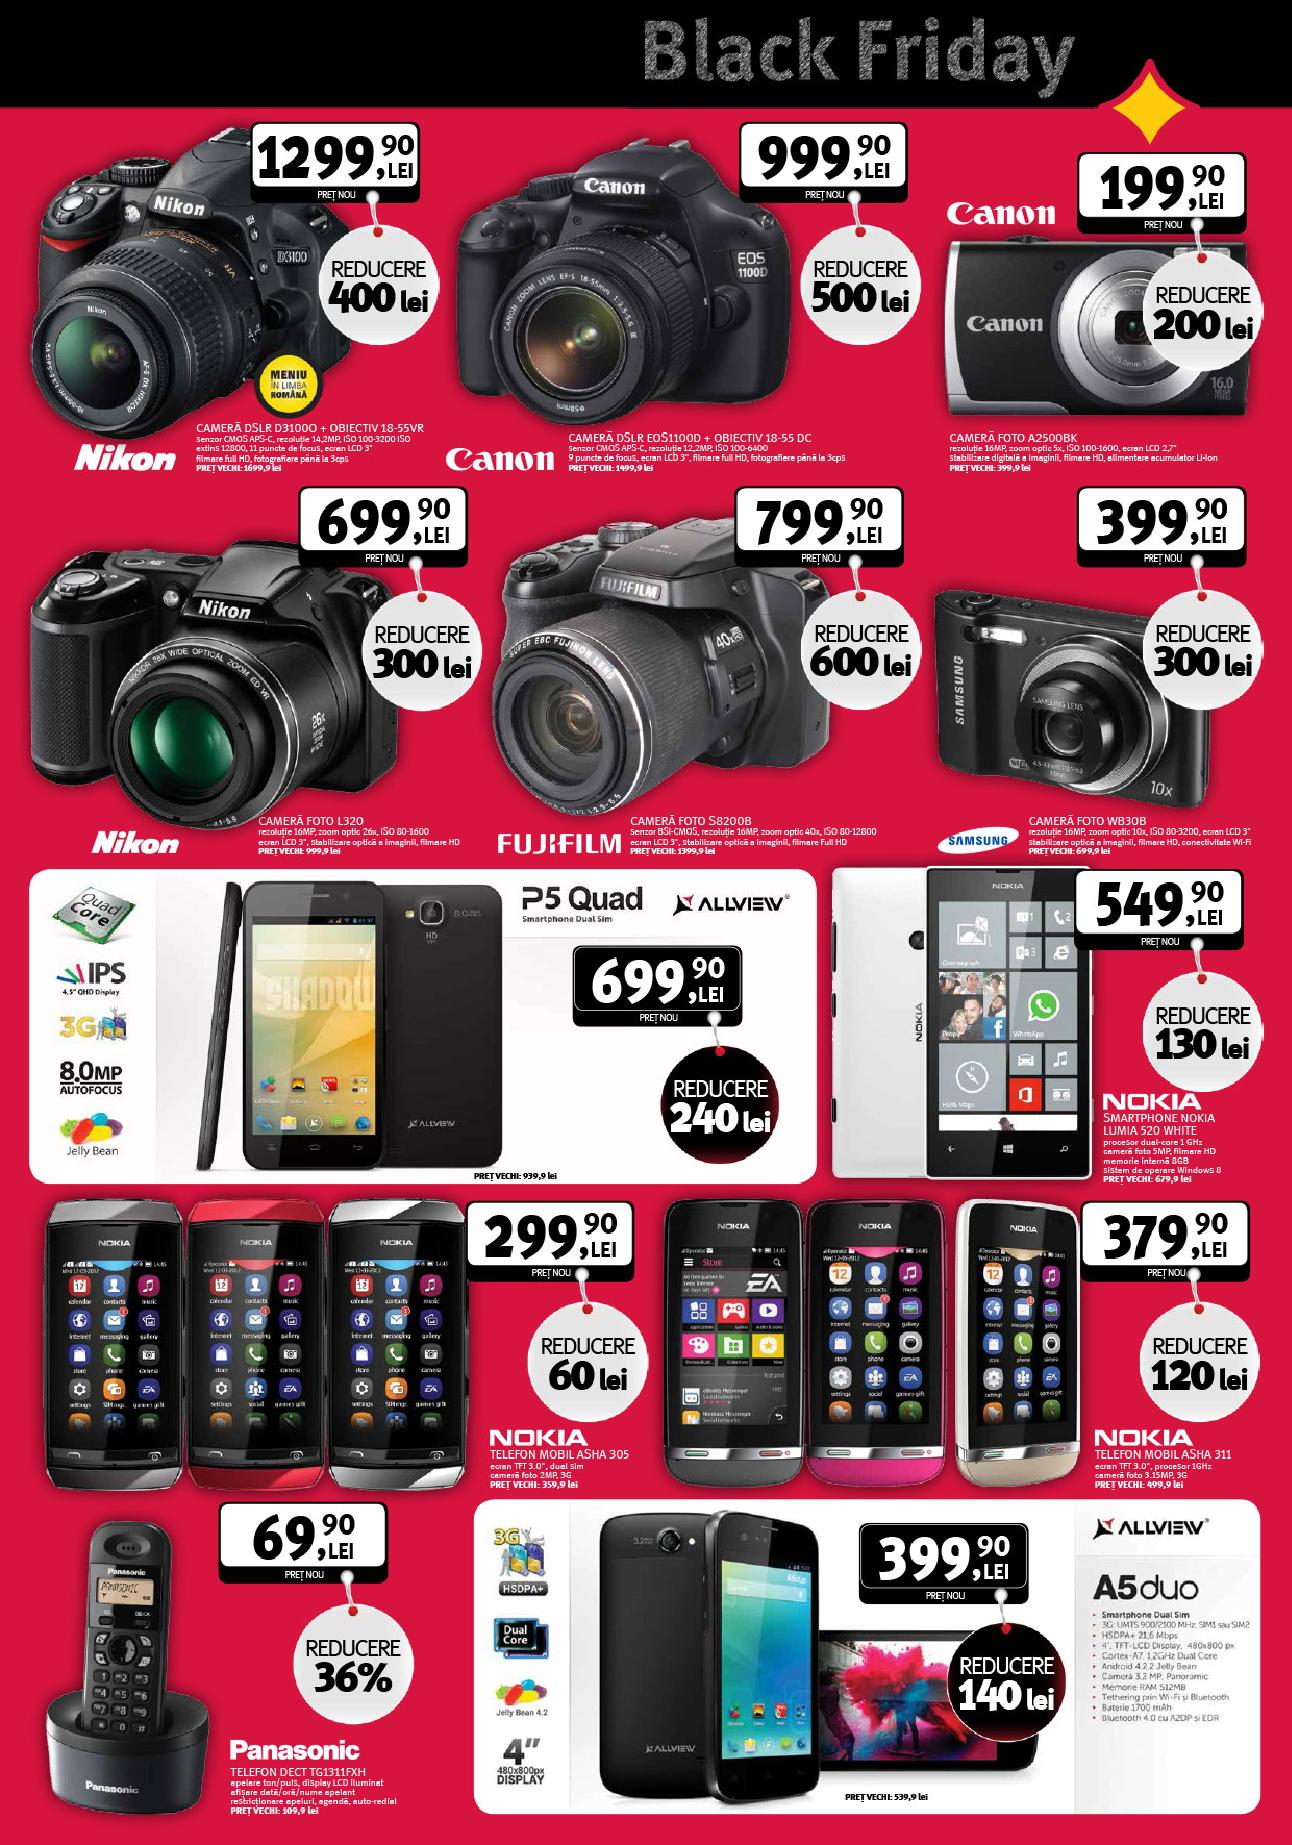 altex reduceri black friday catalog it si telefoane, foto